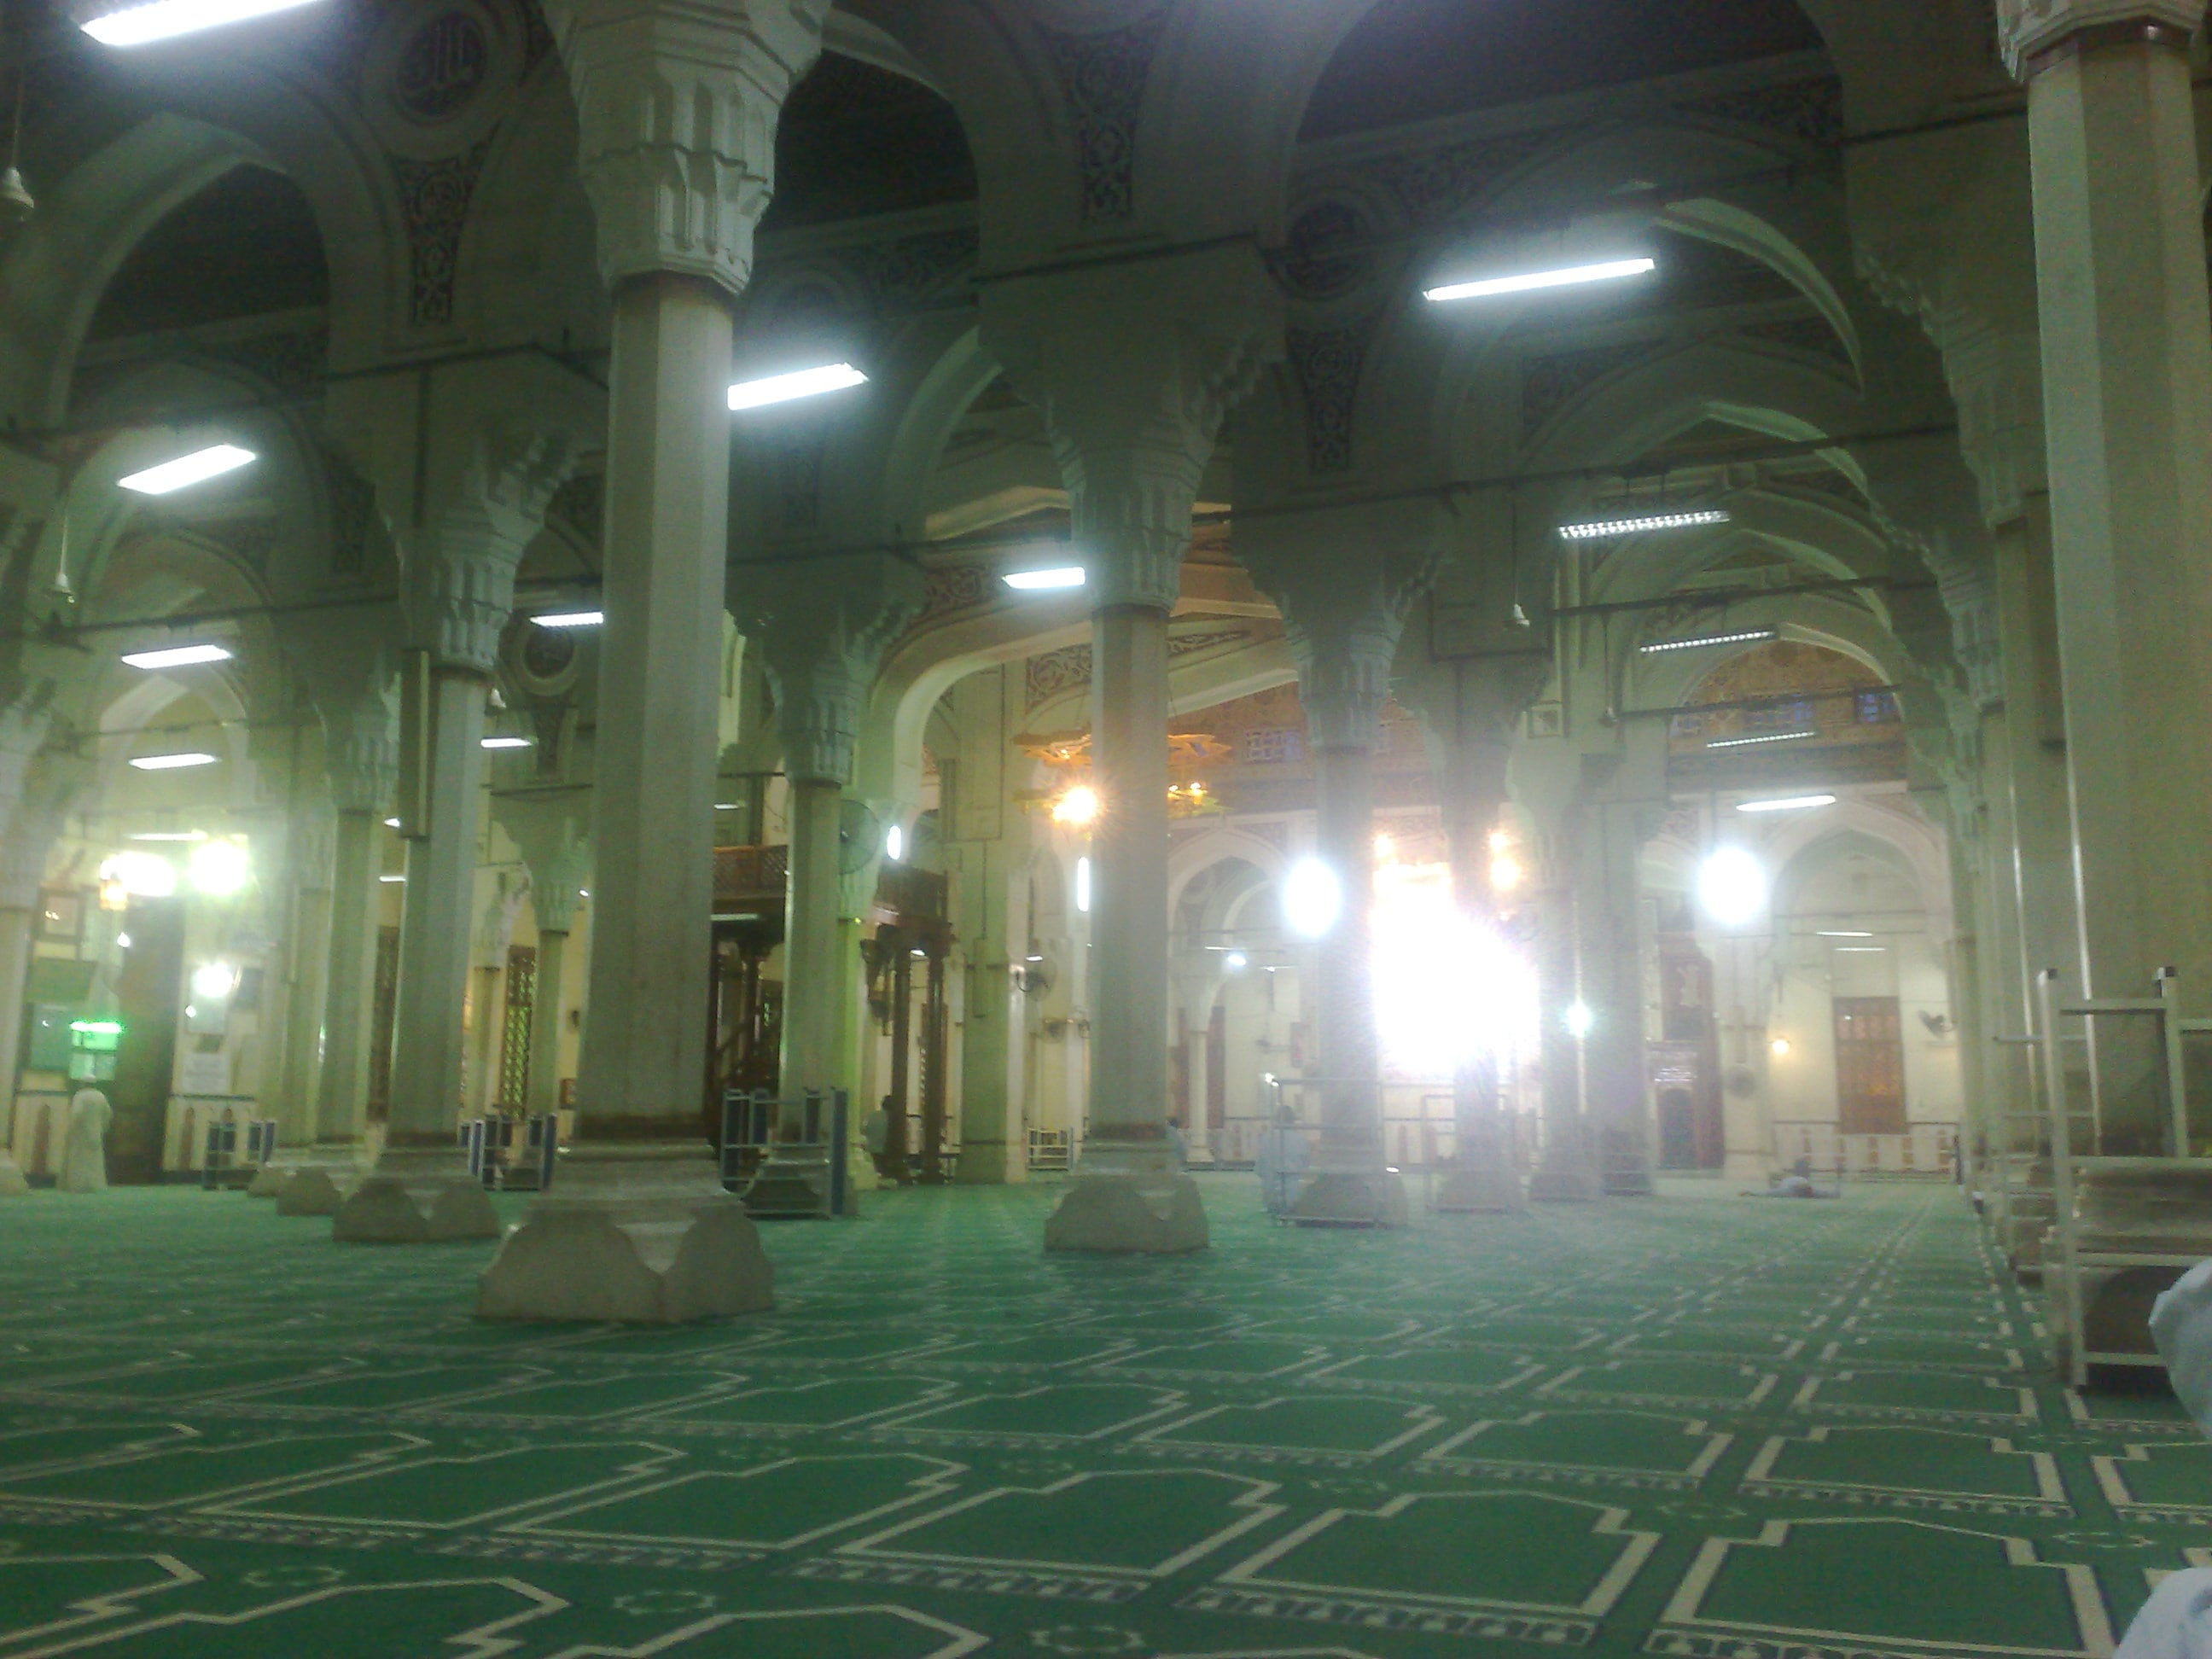 Inside-Mosque_of_Saint_Ibrahim_El-Desouki